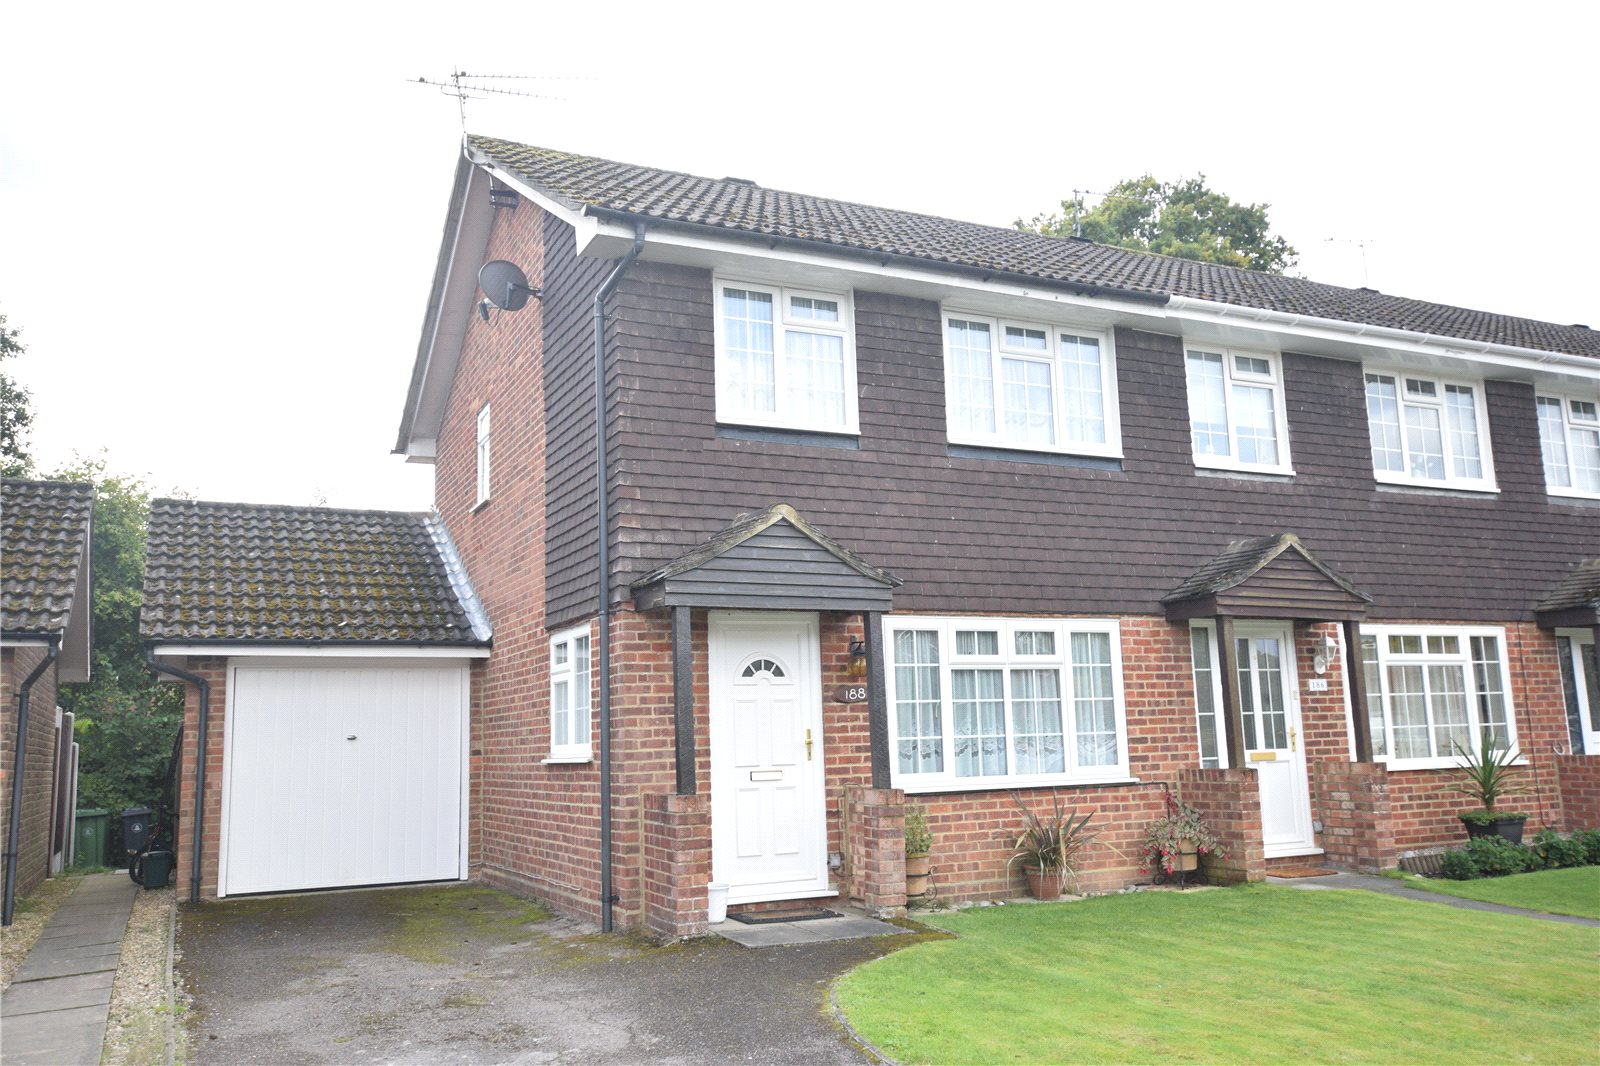 3 Bedrooms End Of Terrace House for sale in Henley Drive, Frimley Green, Camberley, Surrey, GU16